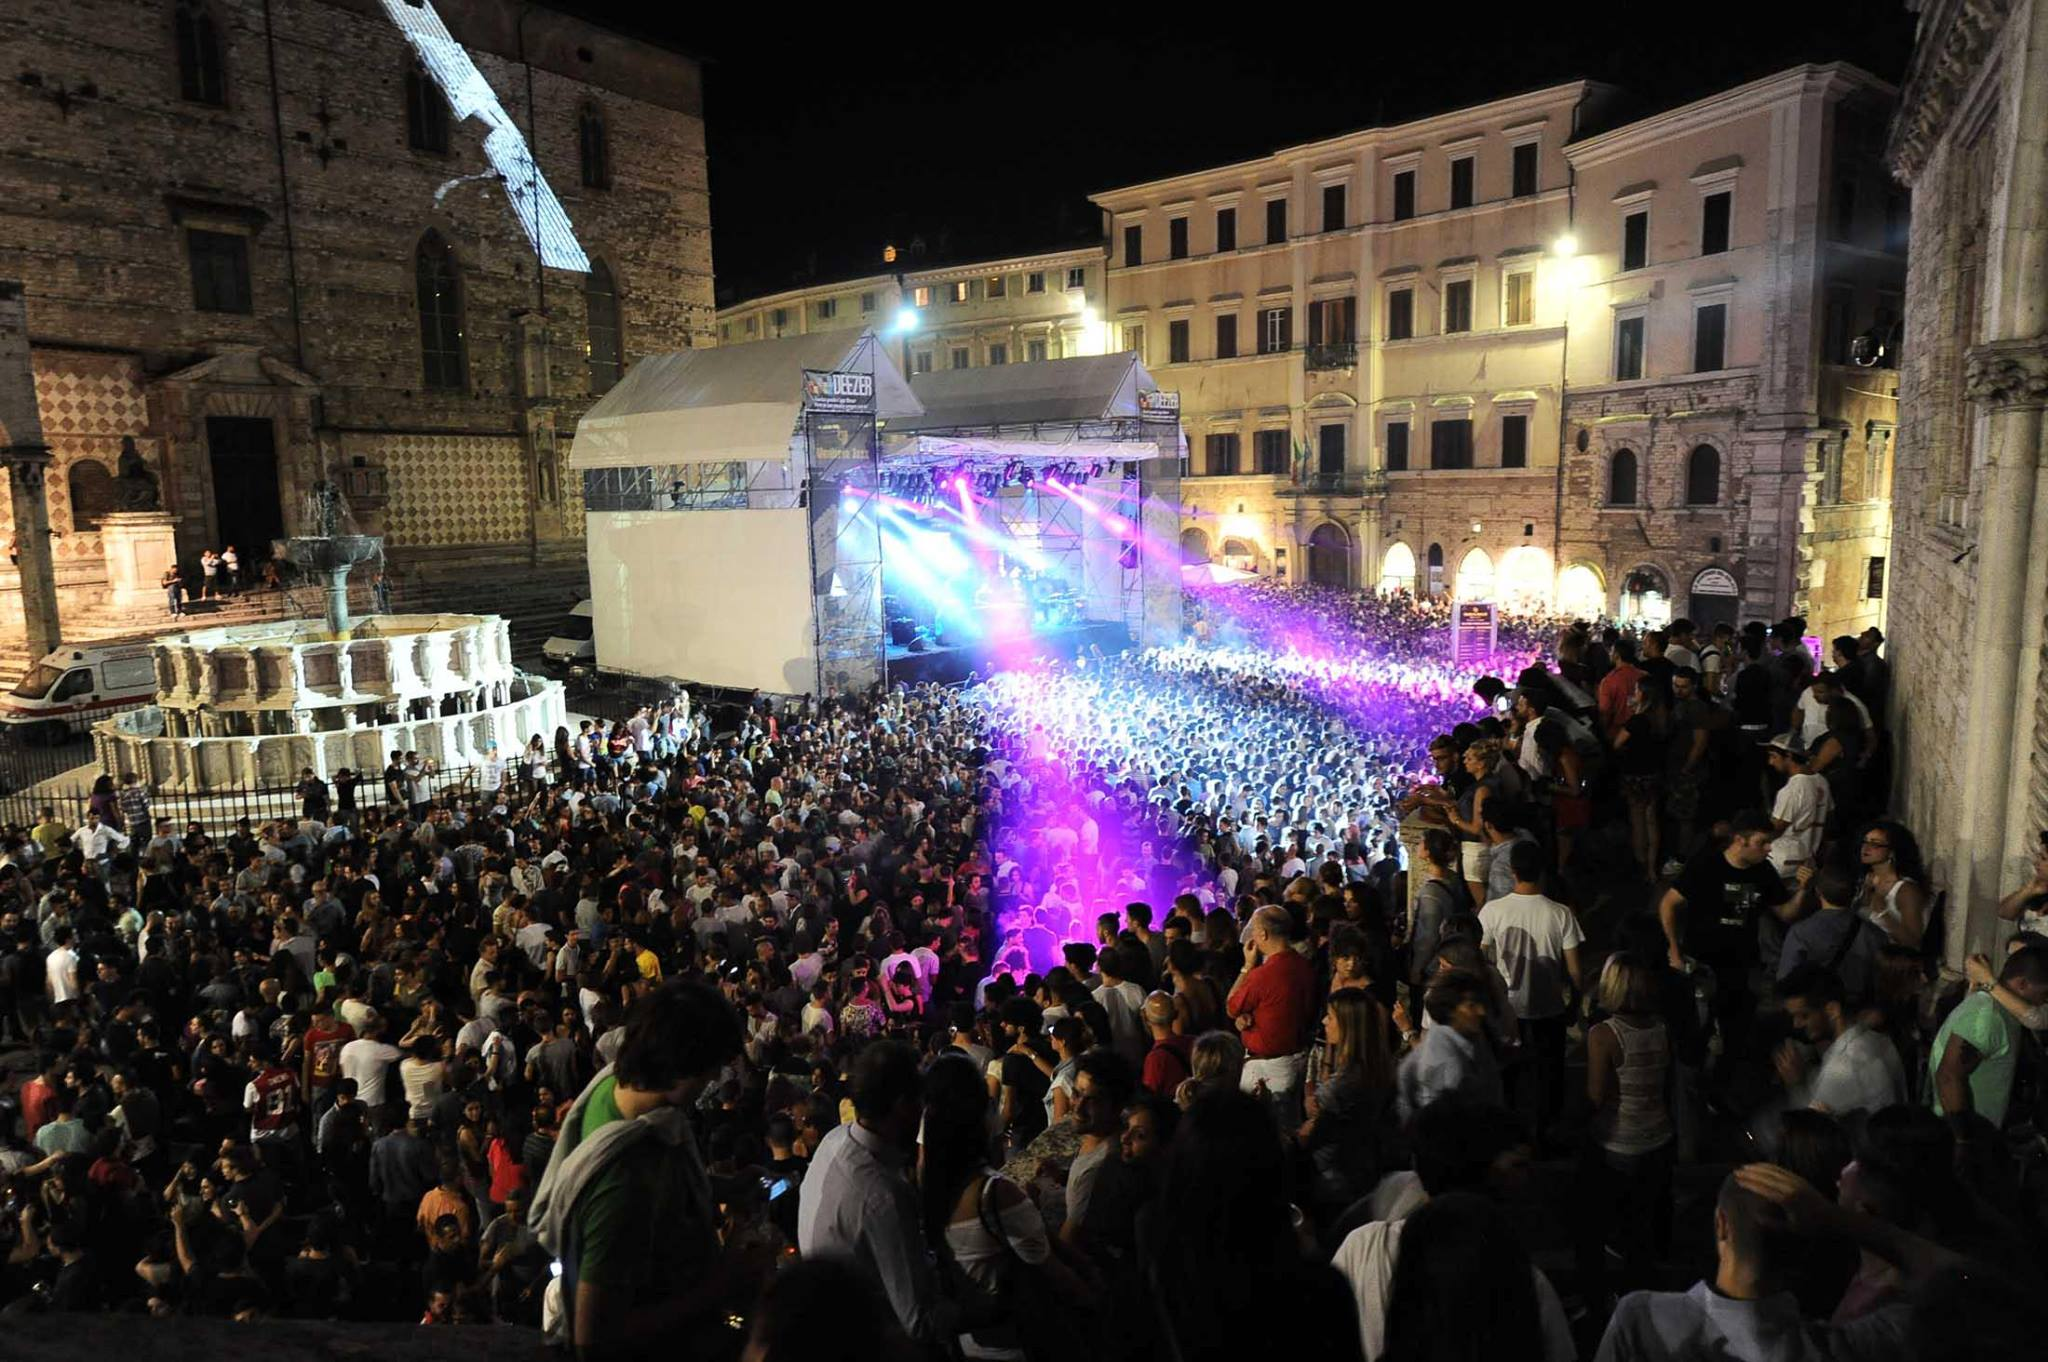 Umbria Jazz Festival 2015 Perugia near luxury villas in Umbria Essential Italy